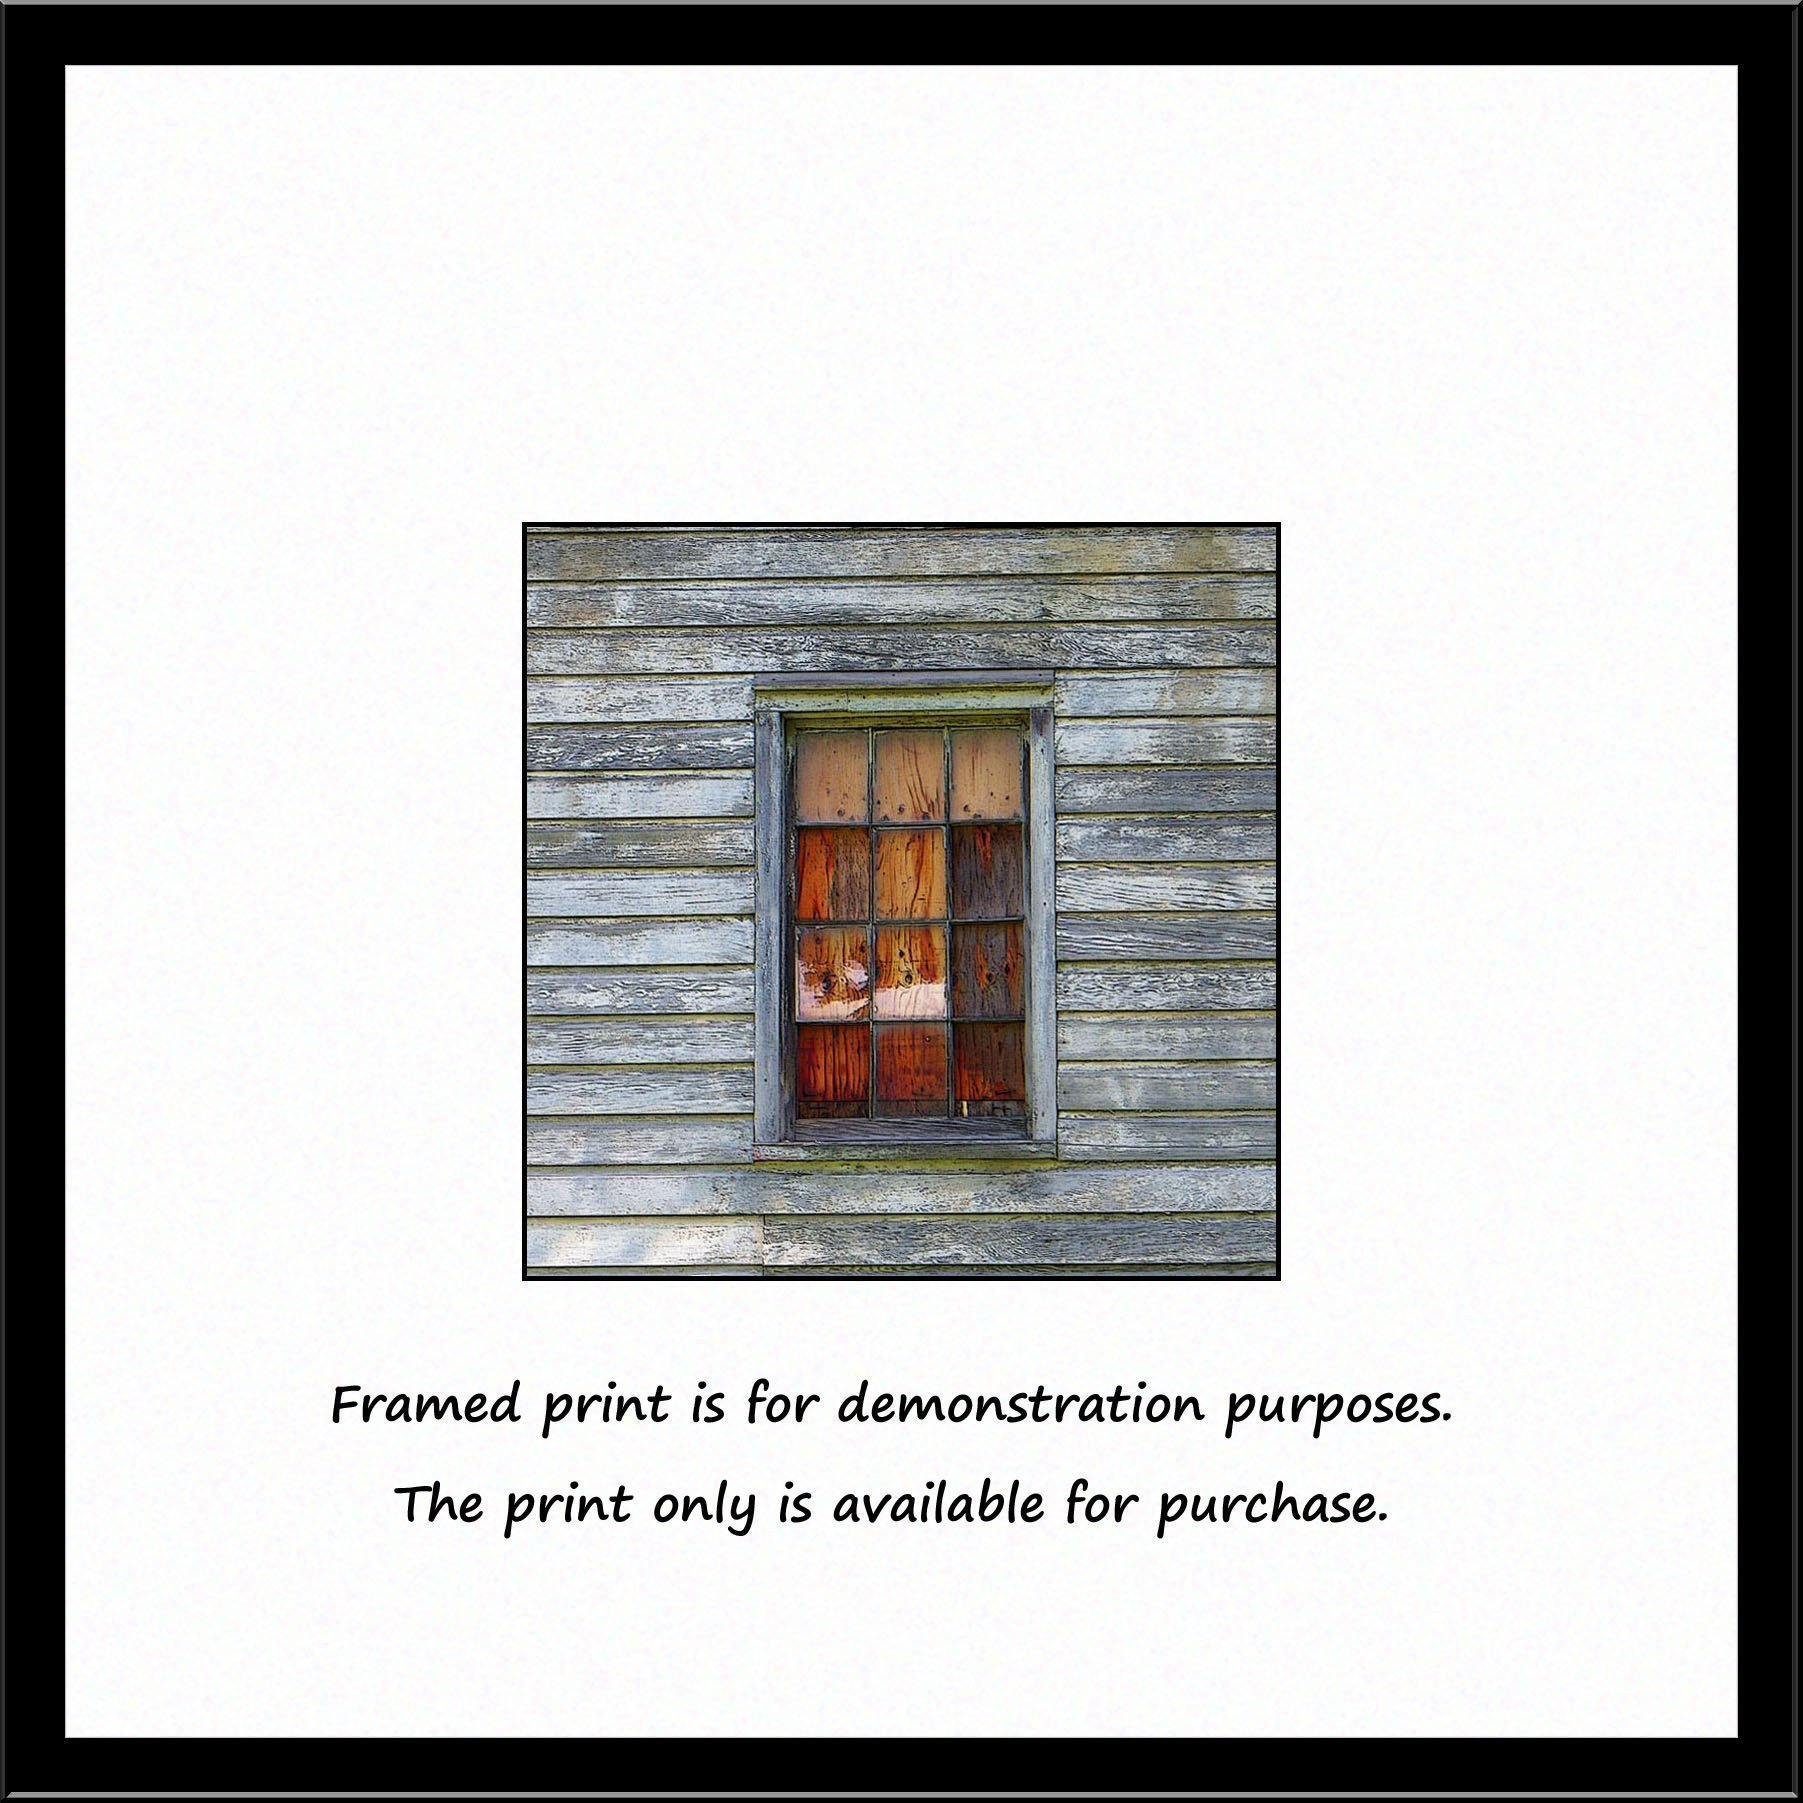 Barn Window with Plywood. A fine art photograph of an old barn window with stained plywood and weathered gray barn siding. A rustic find!